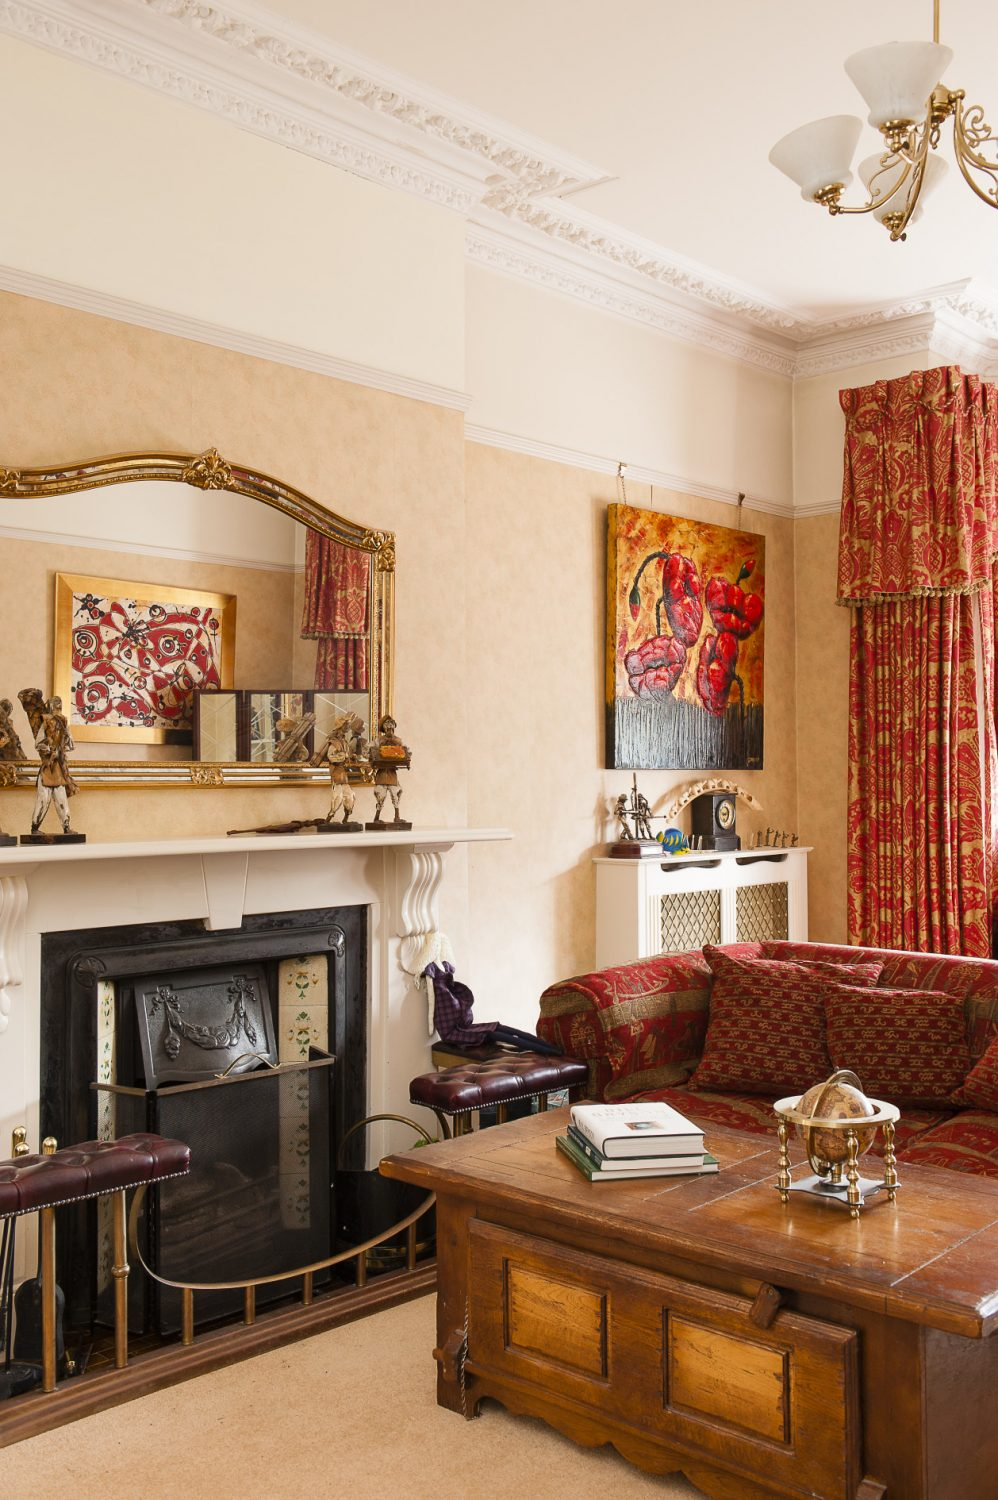 Sofas gather around the fire in the family drawing room